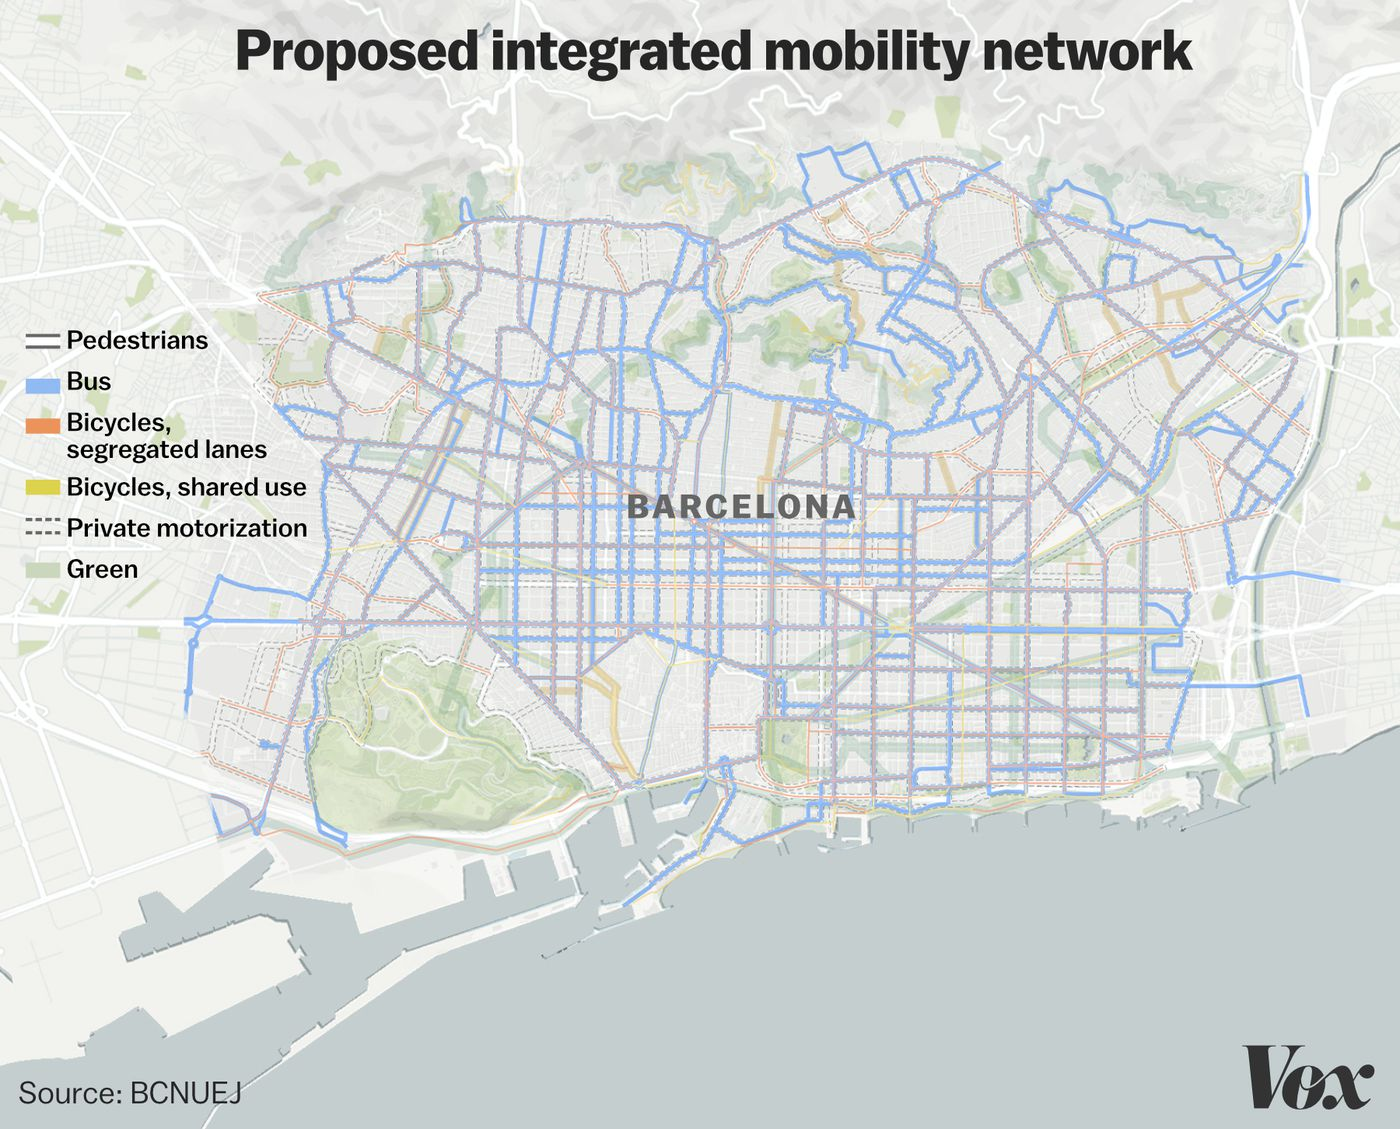 Barcelona, Spain's urban plan to build superblocks: the 2 biggest